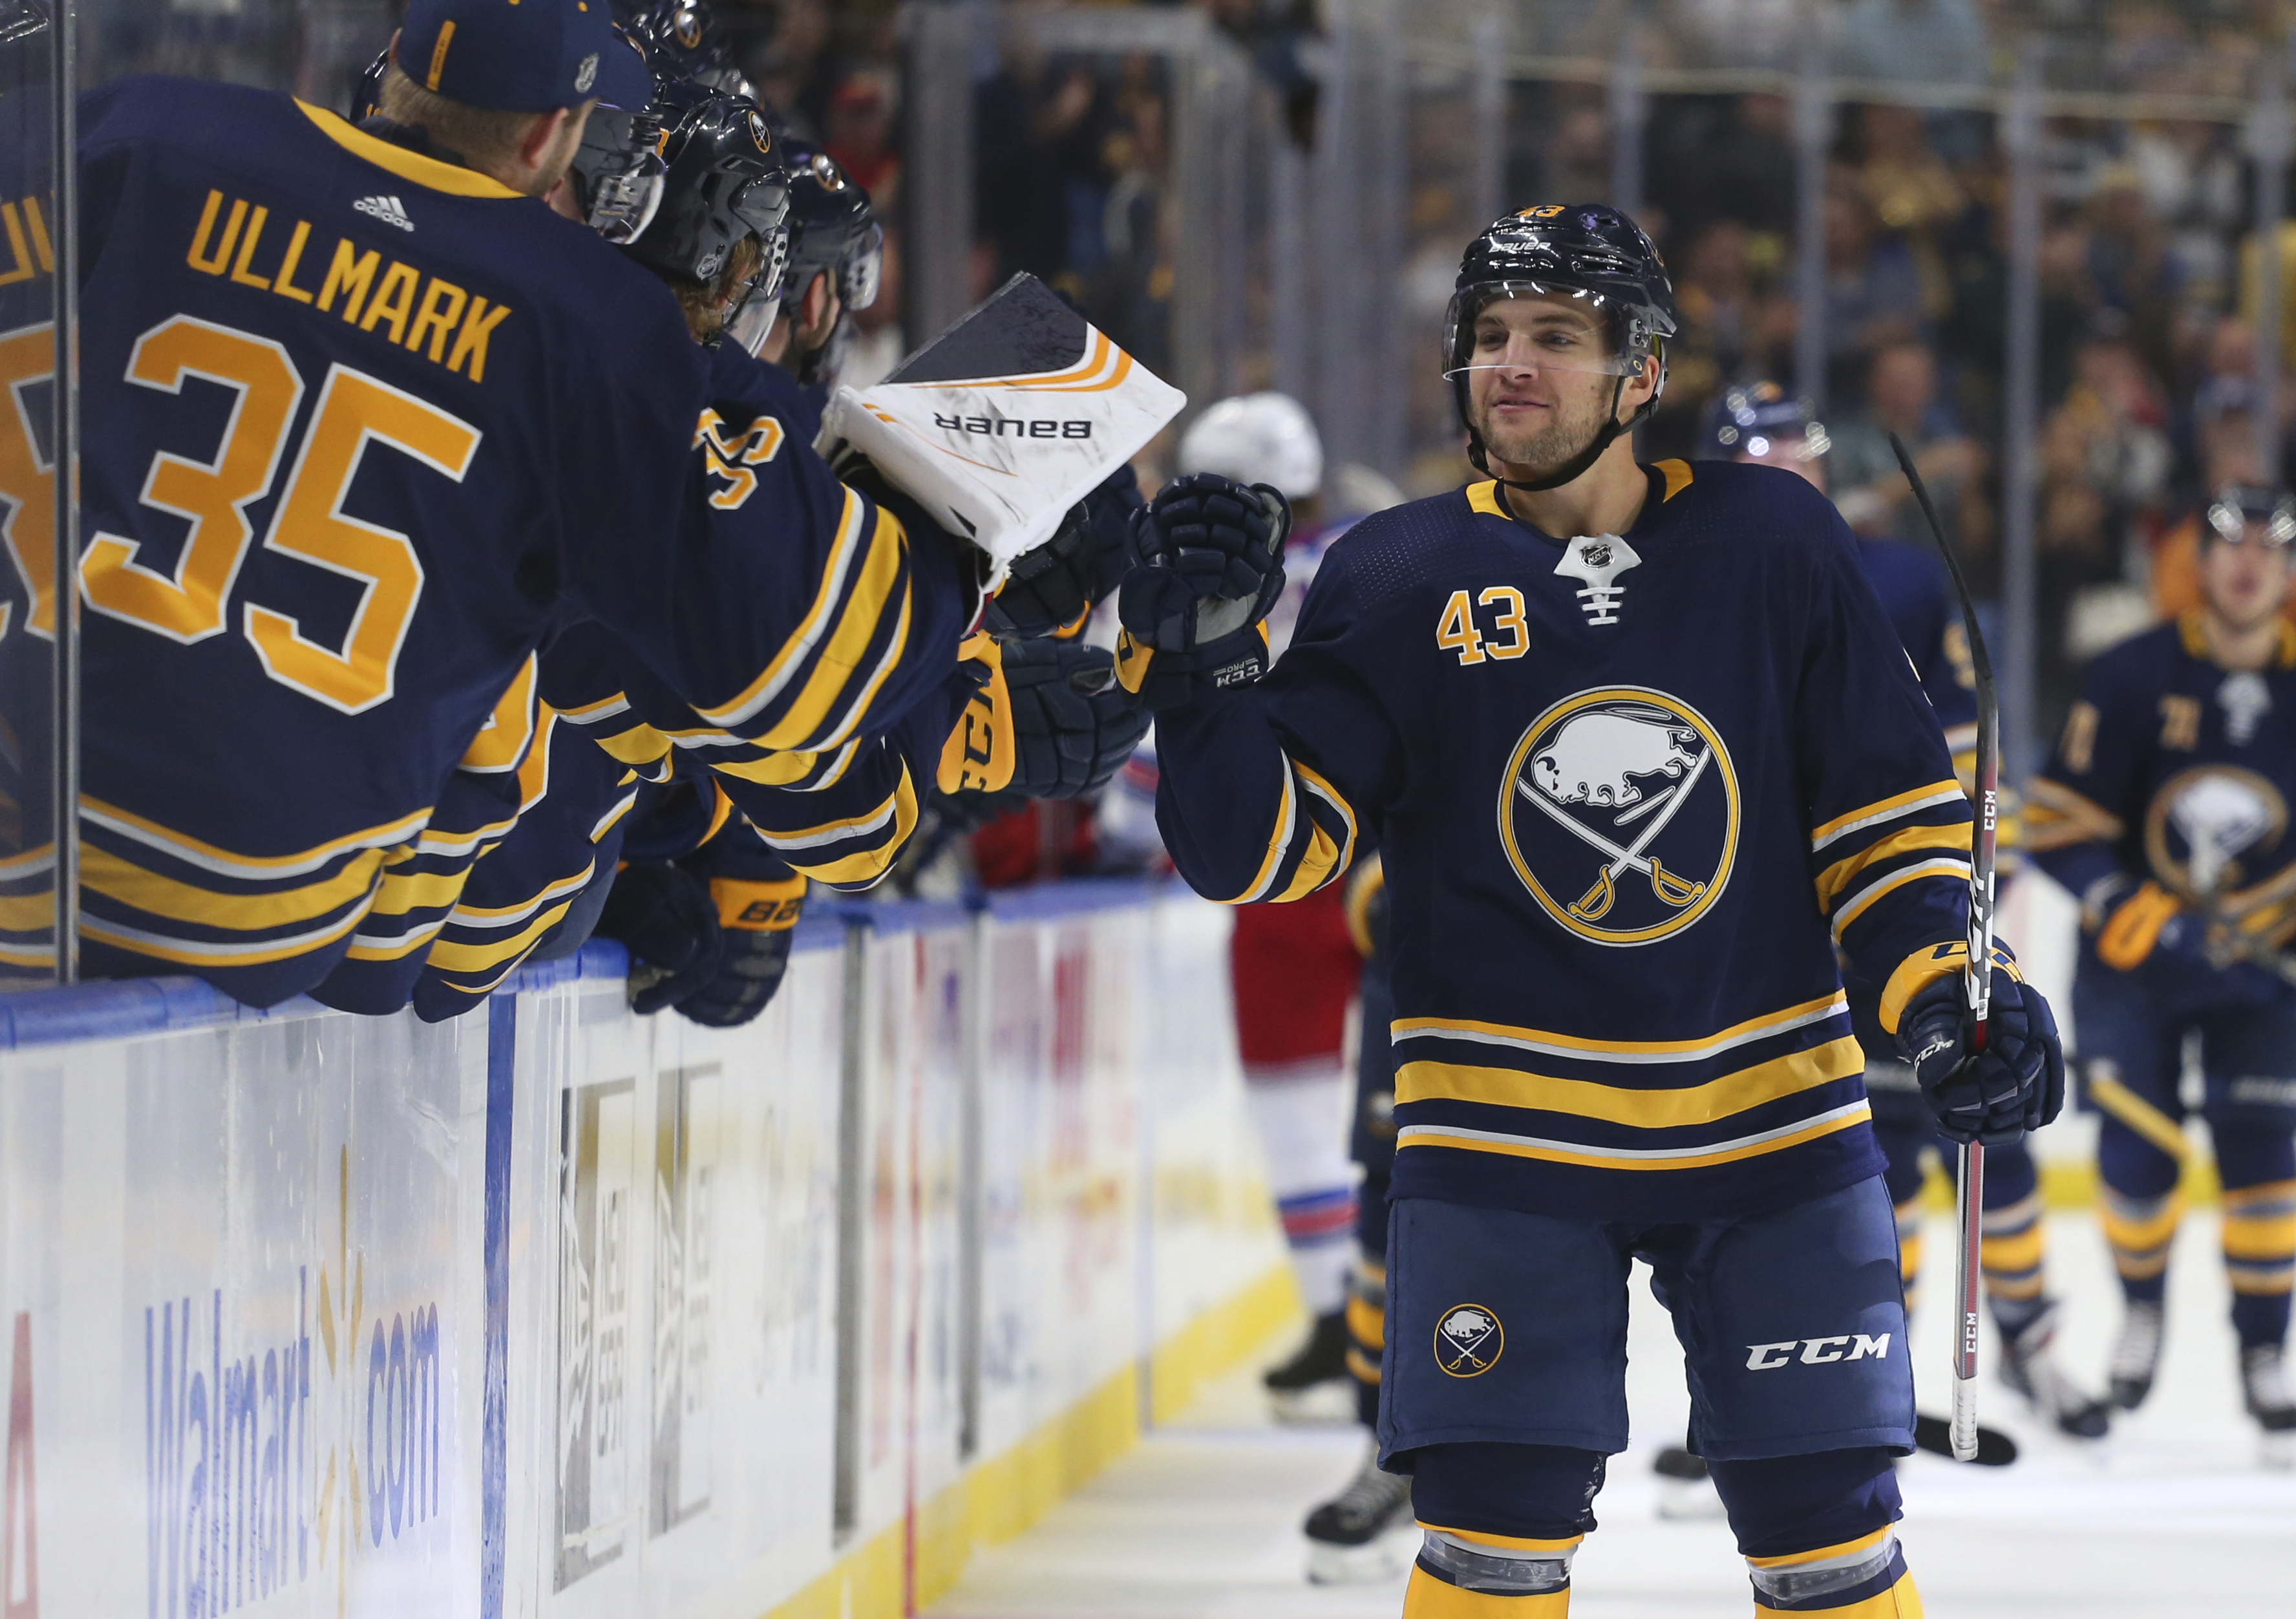 Sheary scores twice in Sabres' 3-1 win over Rangers